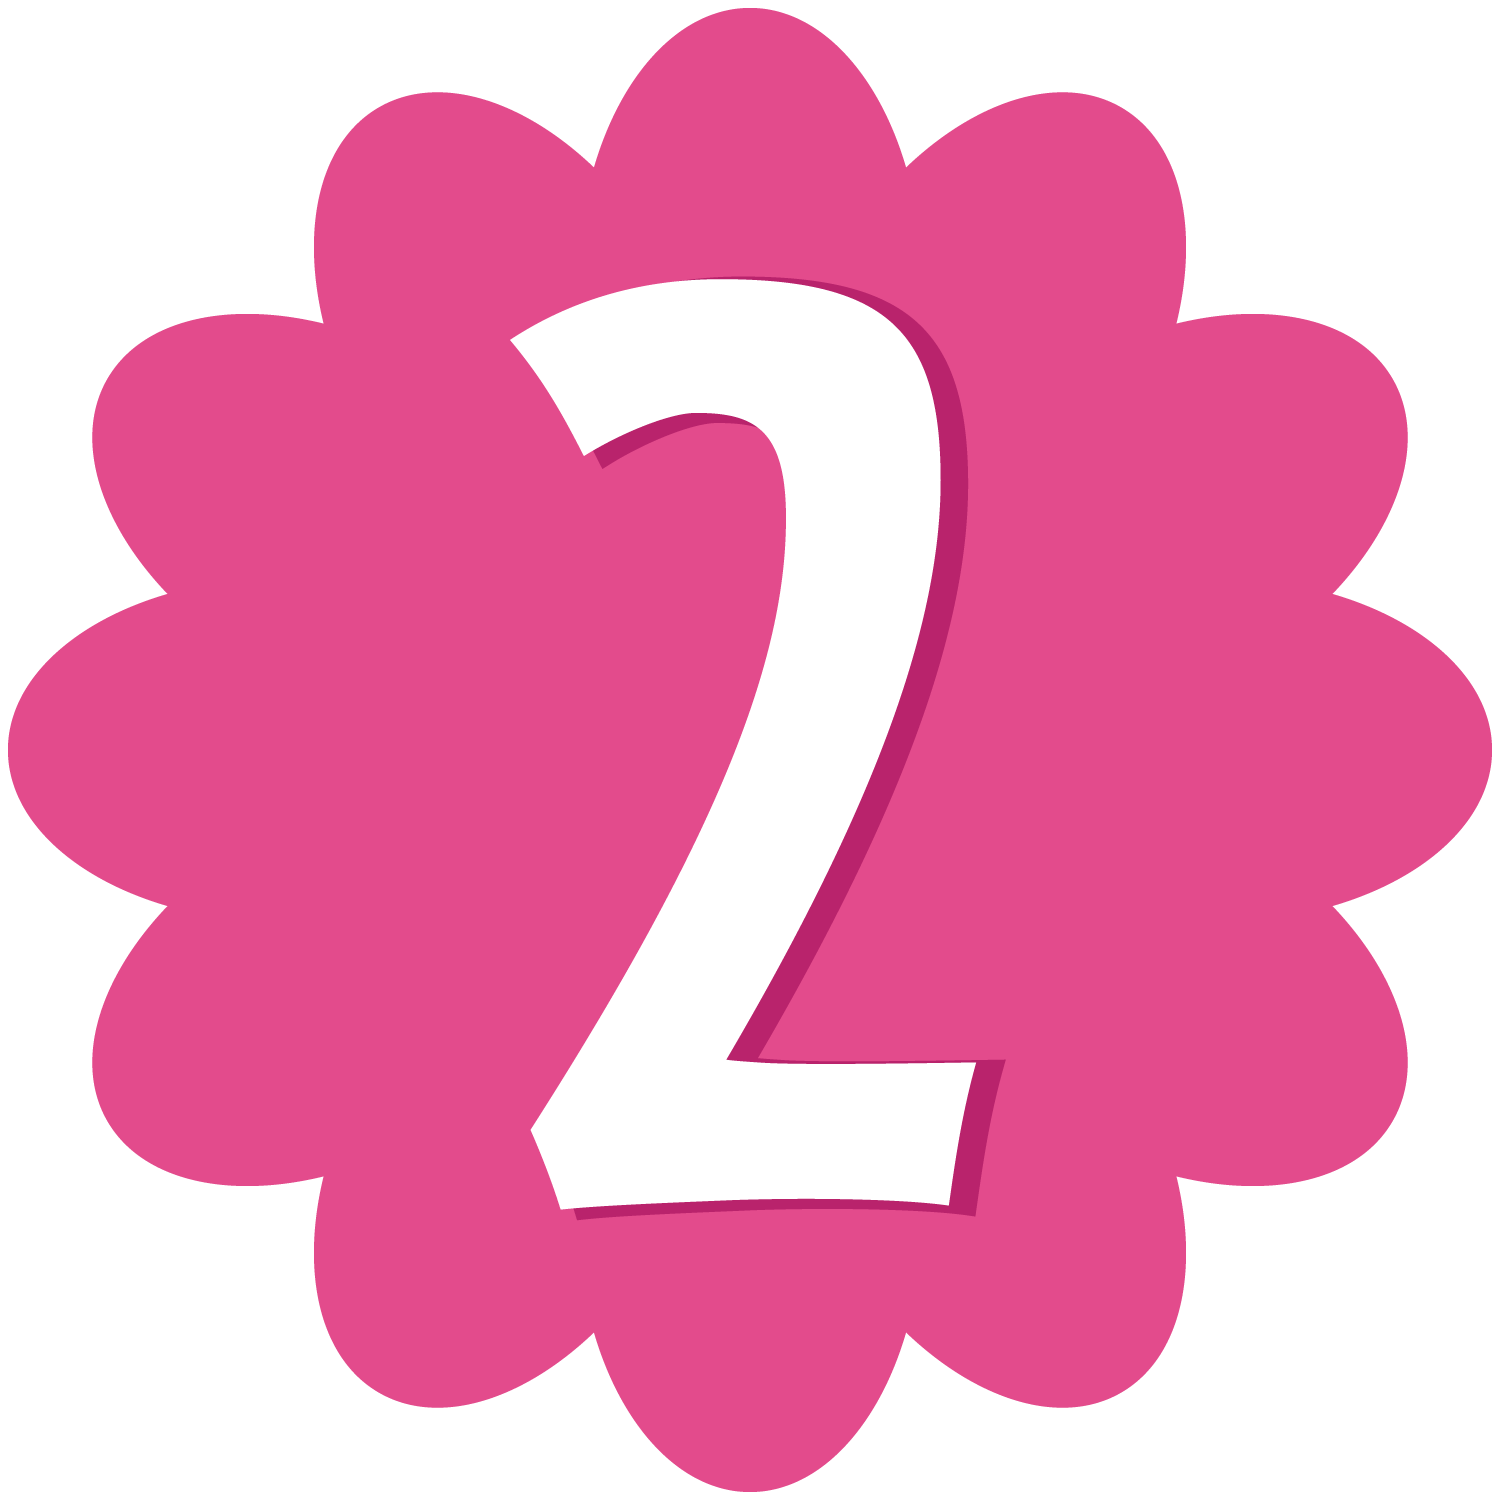 Clipartxtras. Number 2 clipart 2nd birthday boy